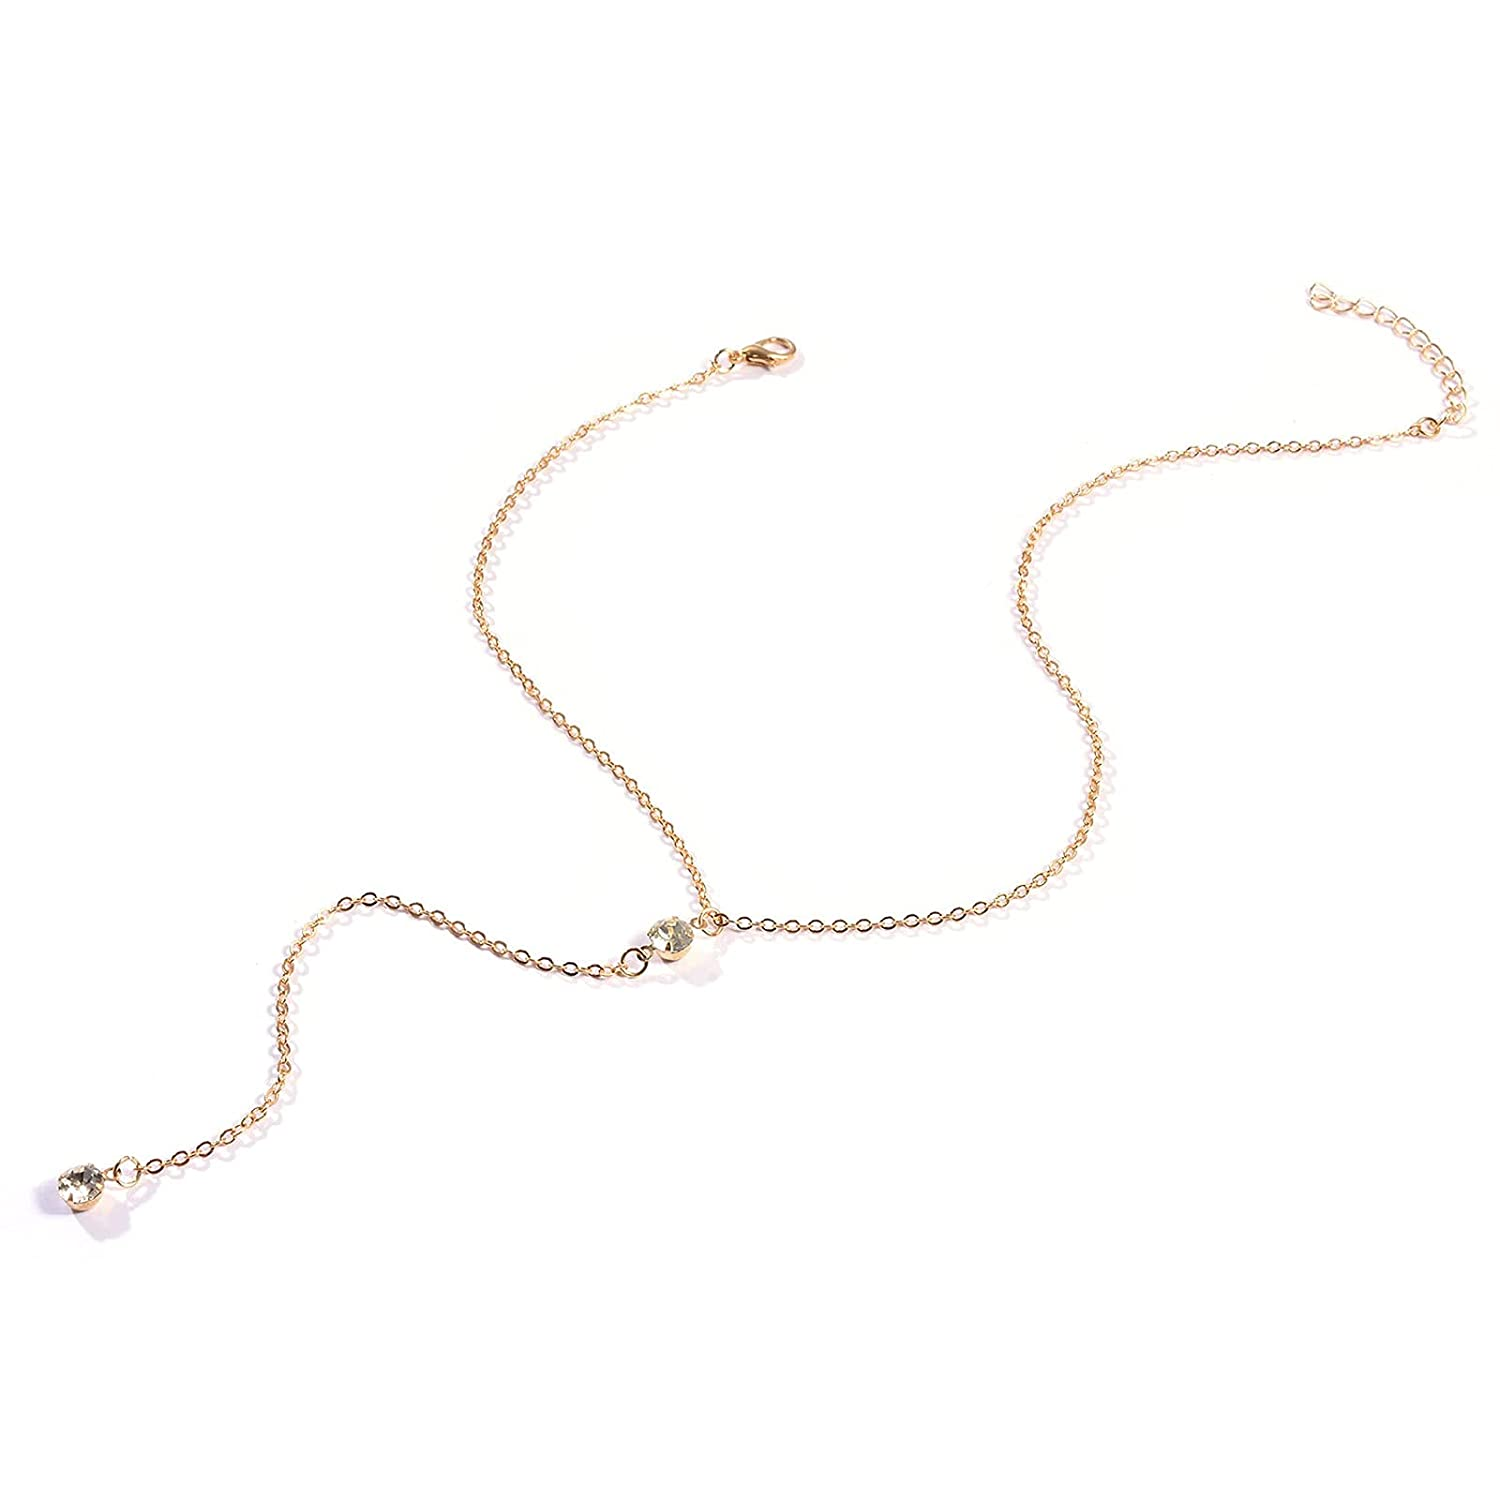 TseanYi Crystal Drop Chain Necklace Rhinestone Dot Pendant Necklace Gold Y Lariat Necklaces Boho Jewelry for Women and Girls (Gold)